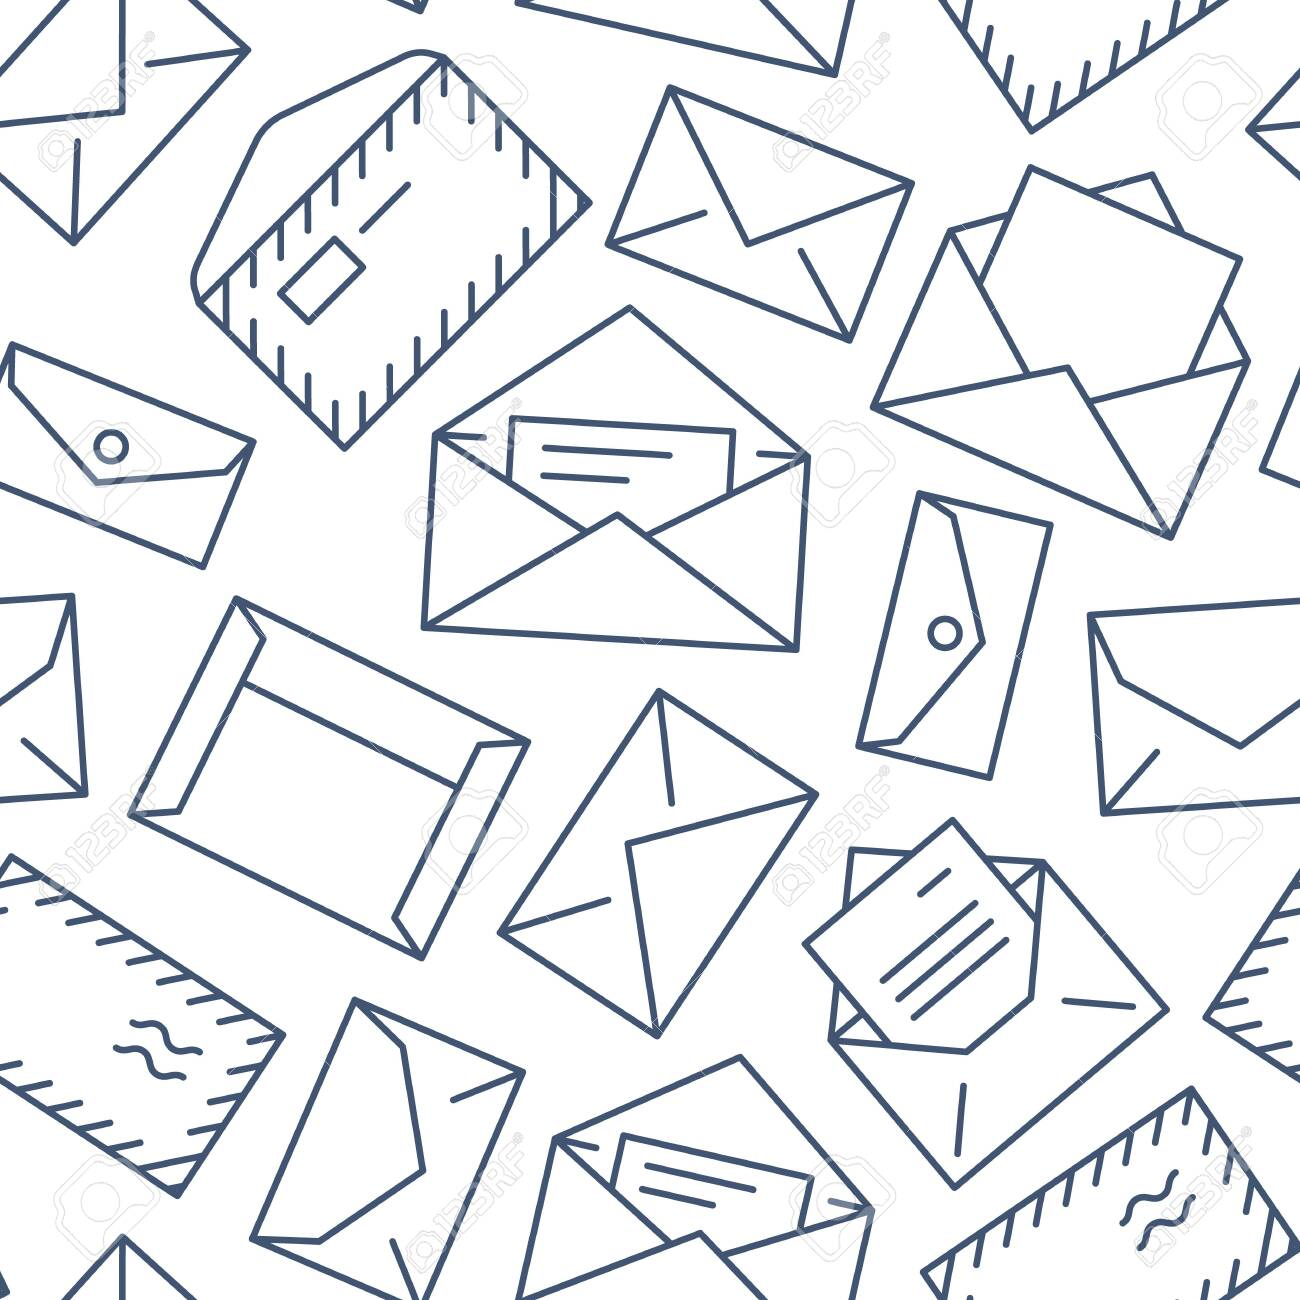 Seamless pattern with envelopes flat line icons. Mail background, message, open envelope with letter, email vector illustrations. Black white thin signs for mailing list, post office. - 120133264